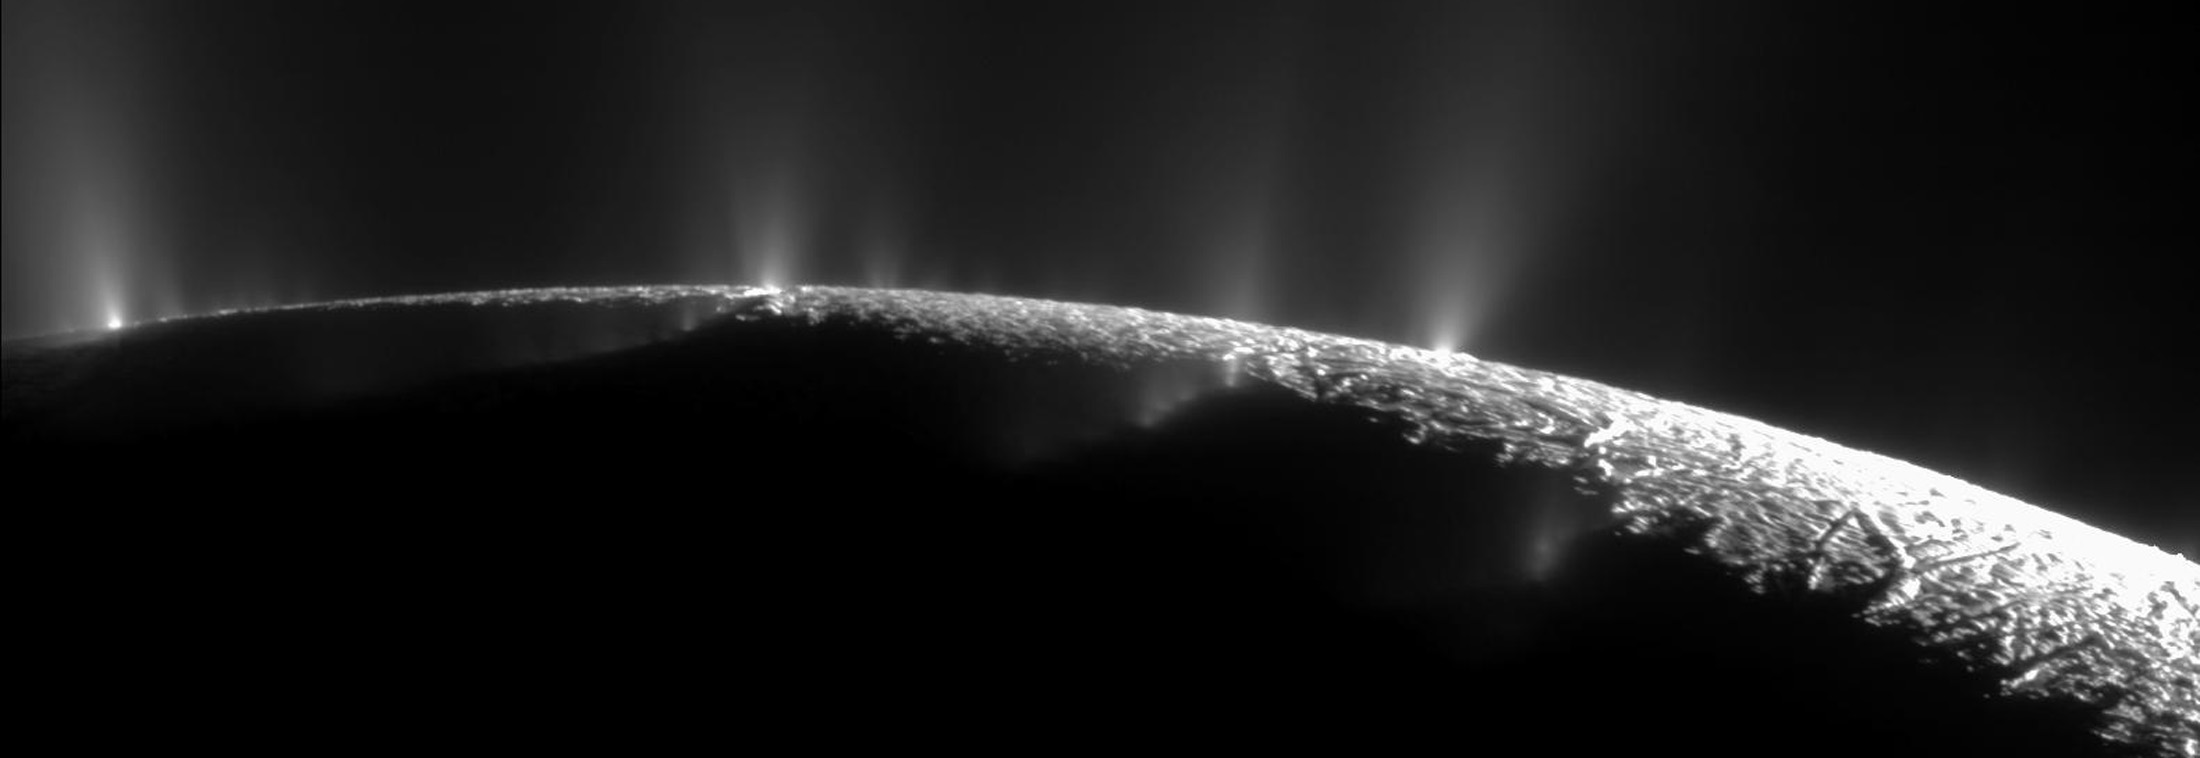 Background: Enceladus Plumes